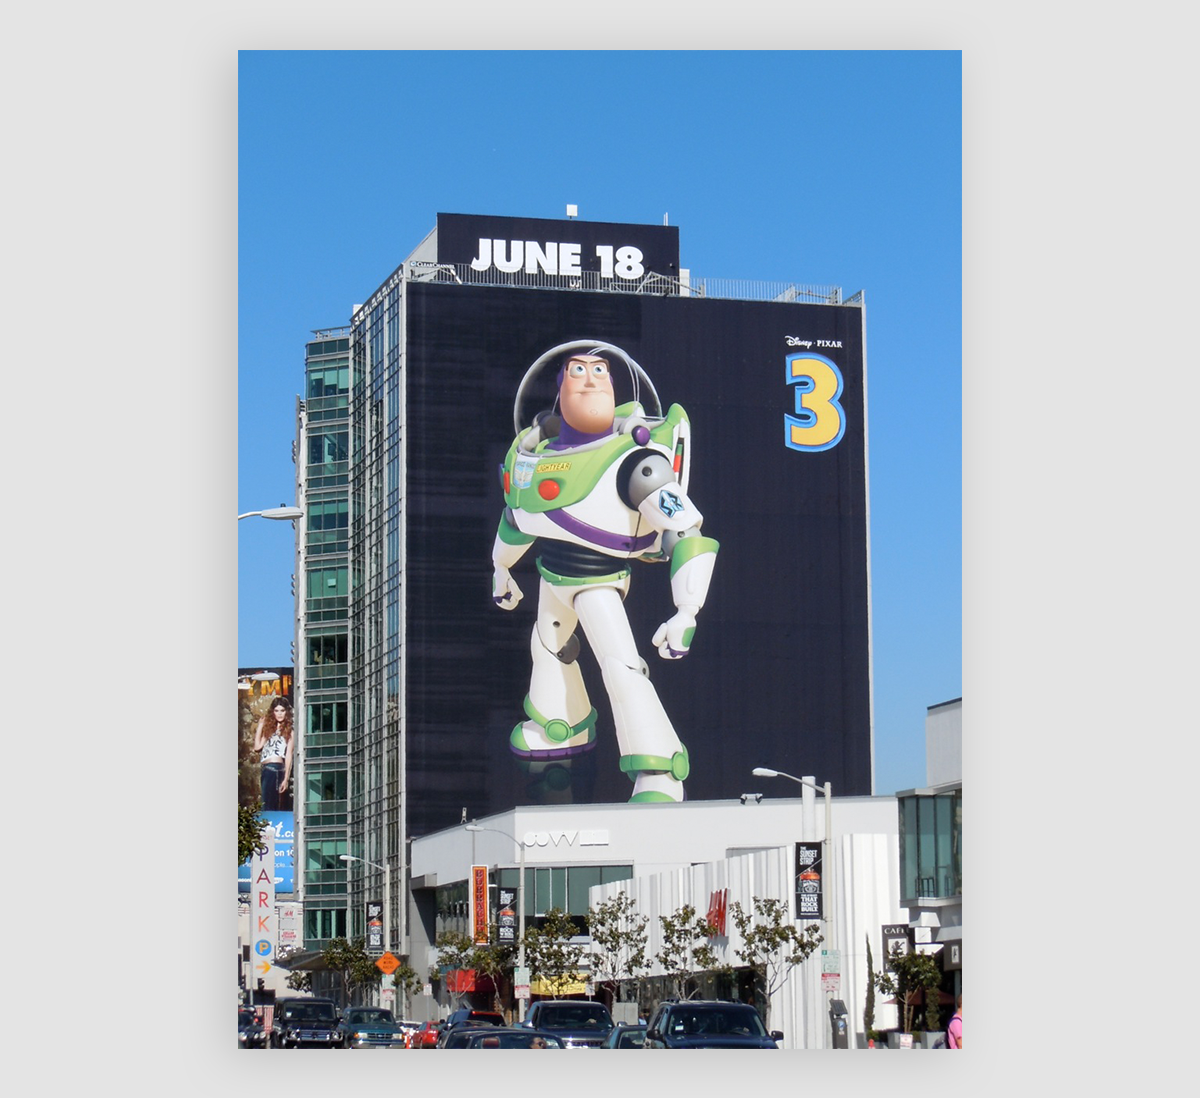 A photo of Buzz Lightyear on a giant billboard on the side of a large building.